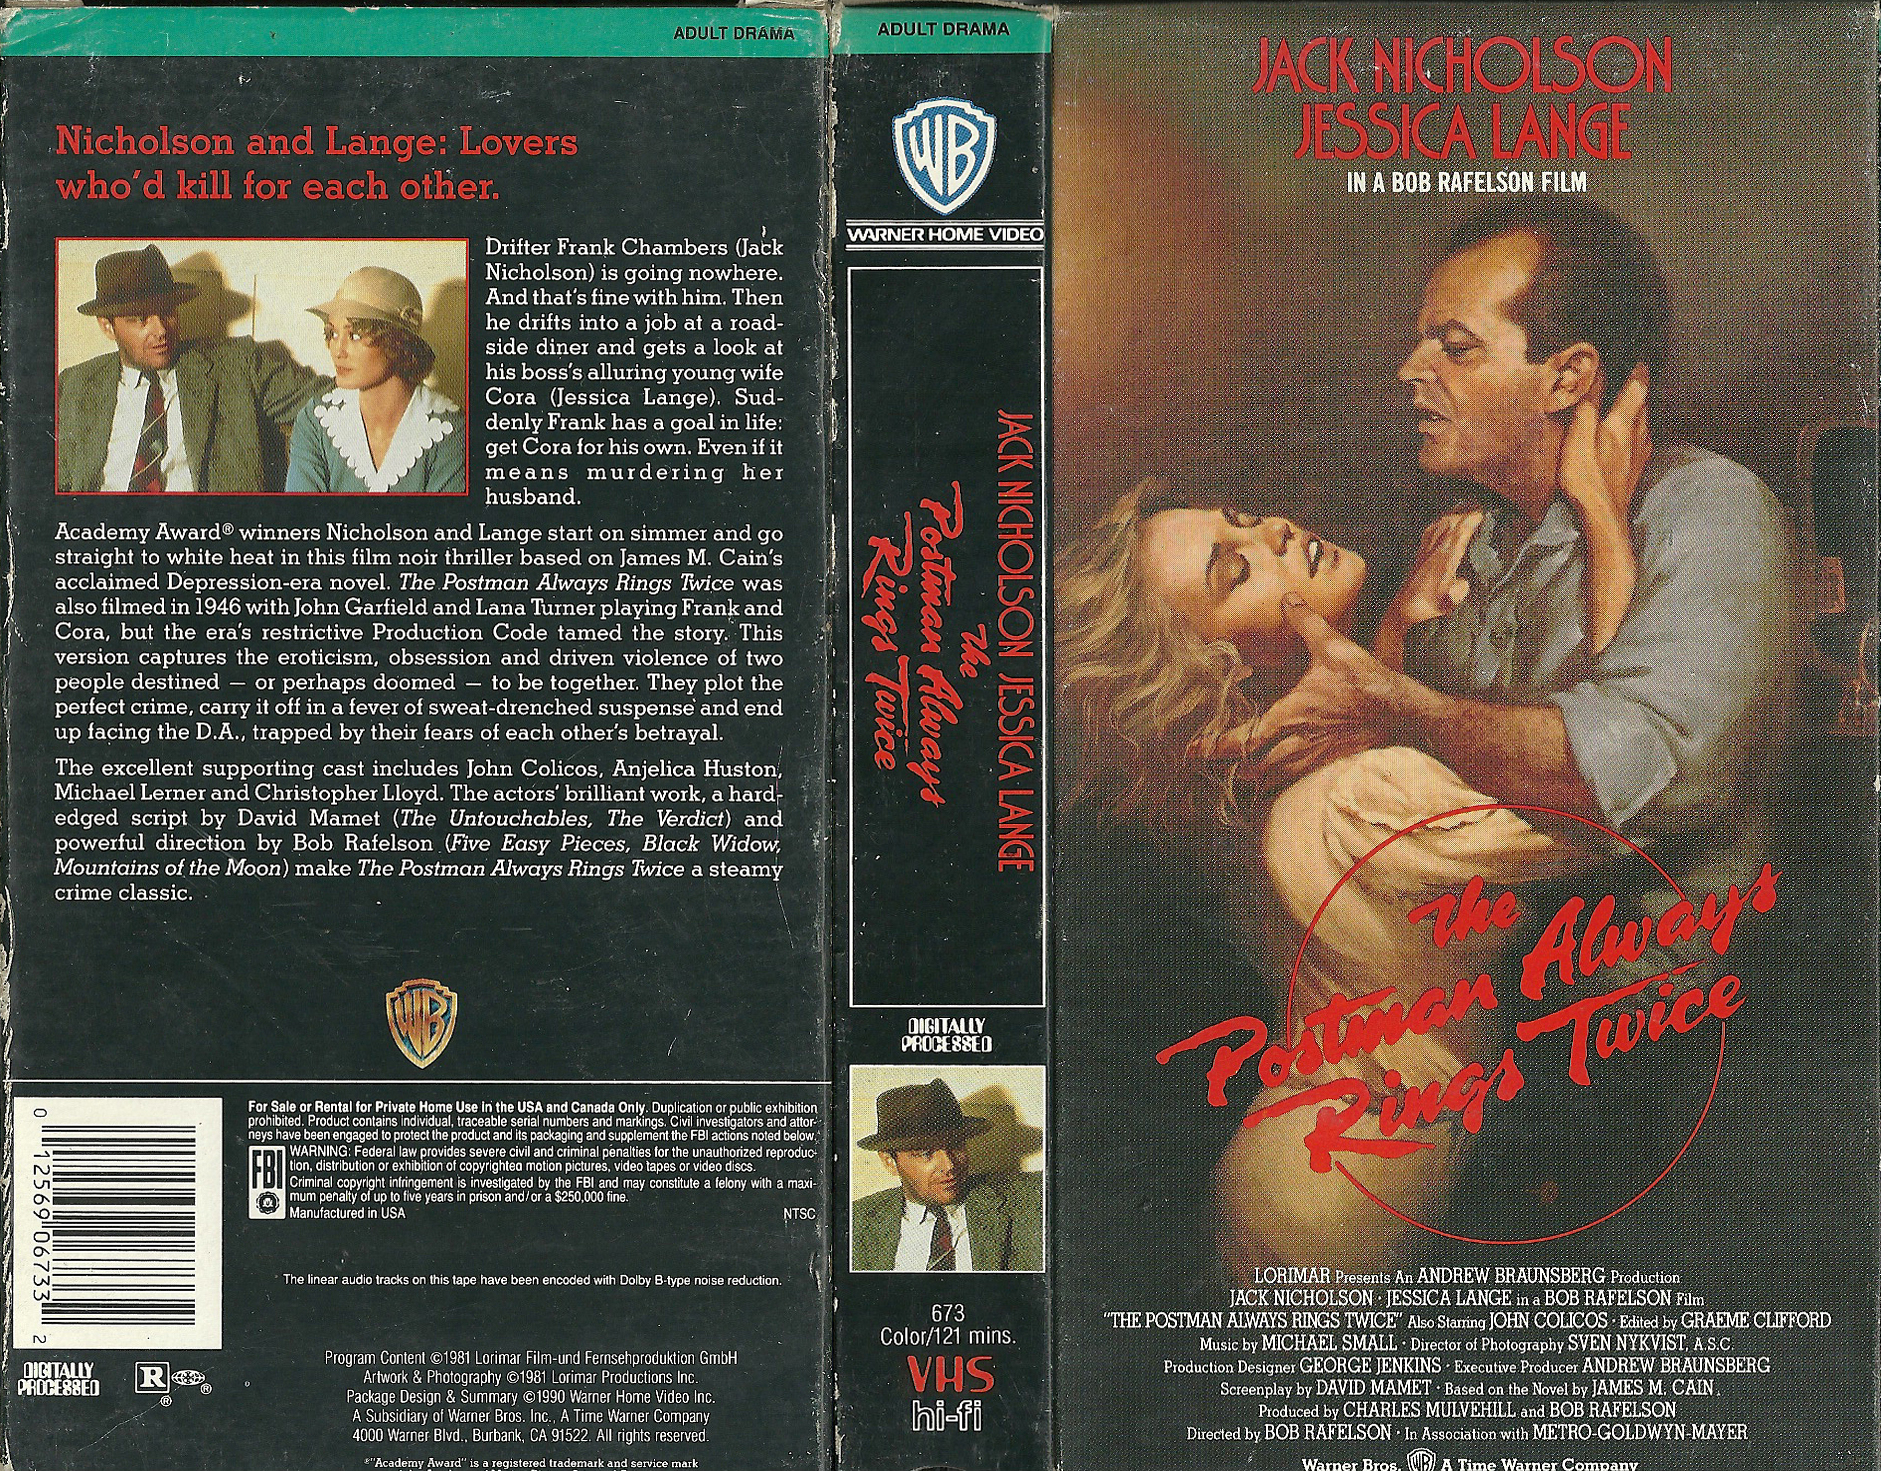 The postman always rings twice 1981 2